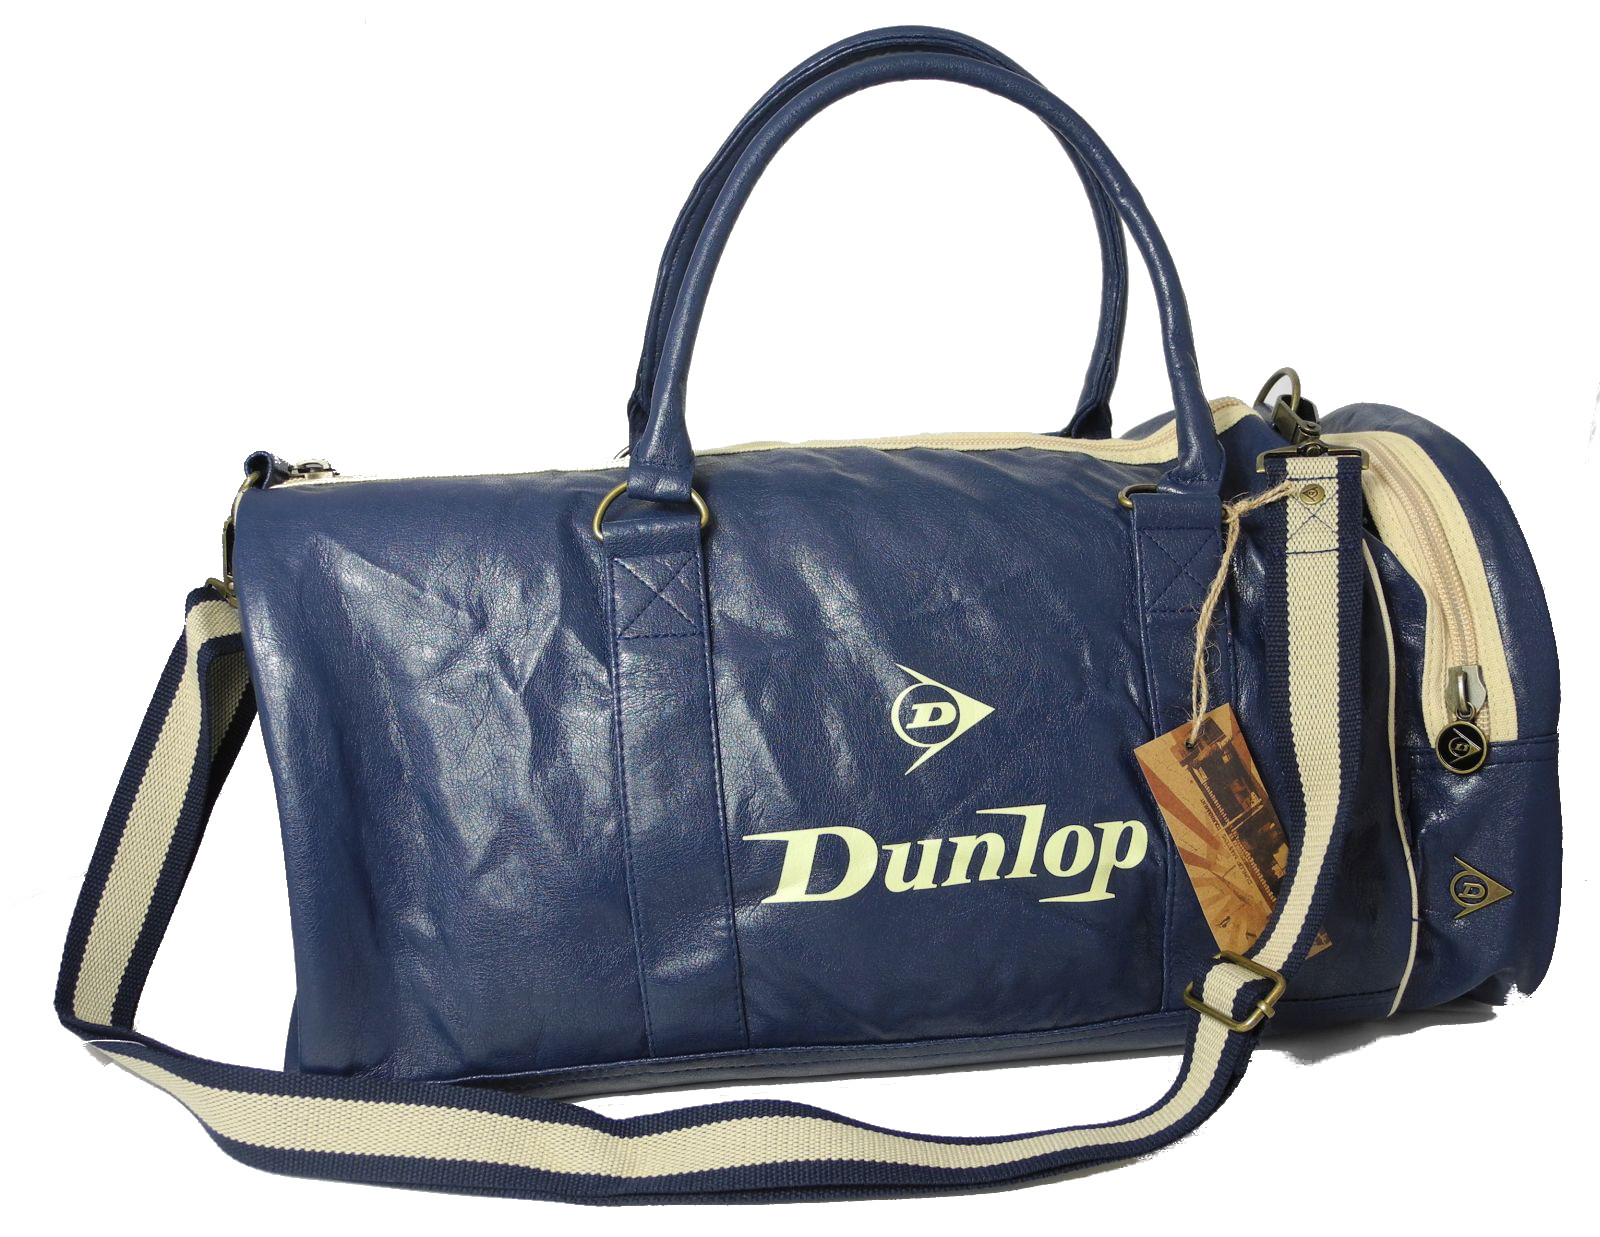 Dunlop Retro Shoulder Bag 62